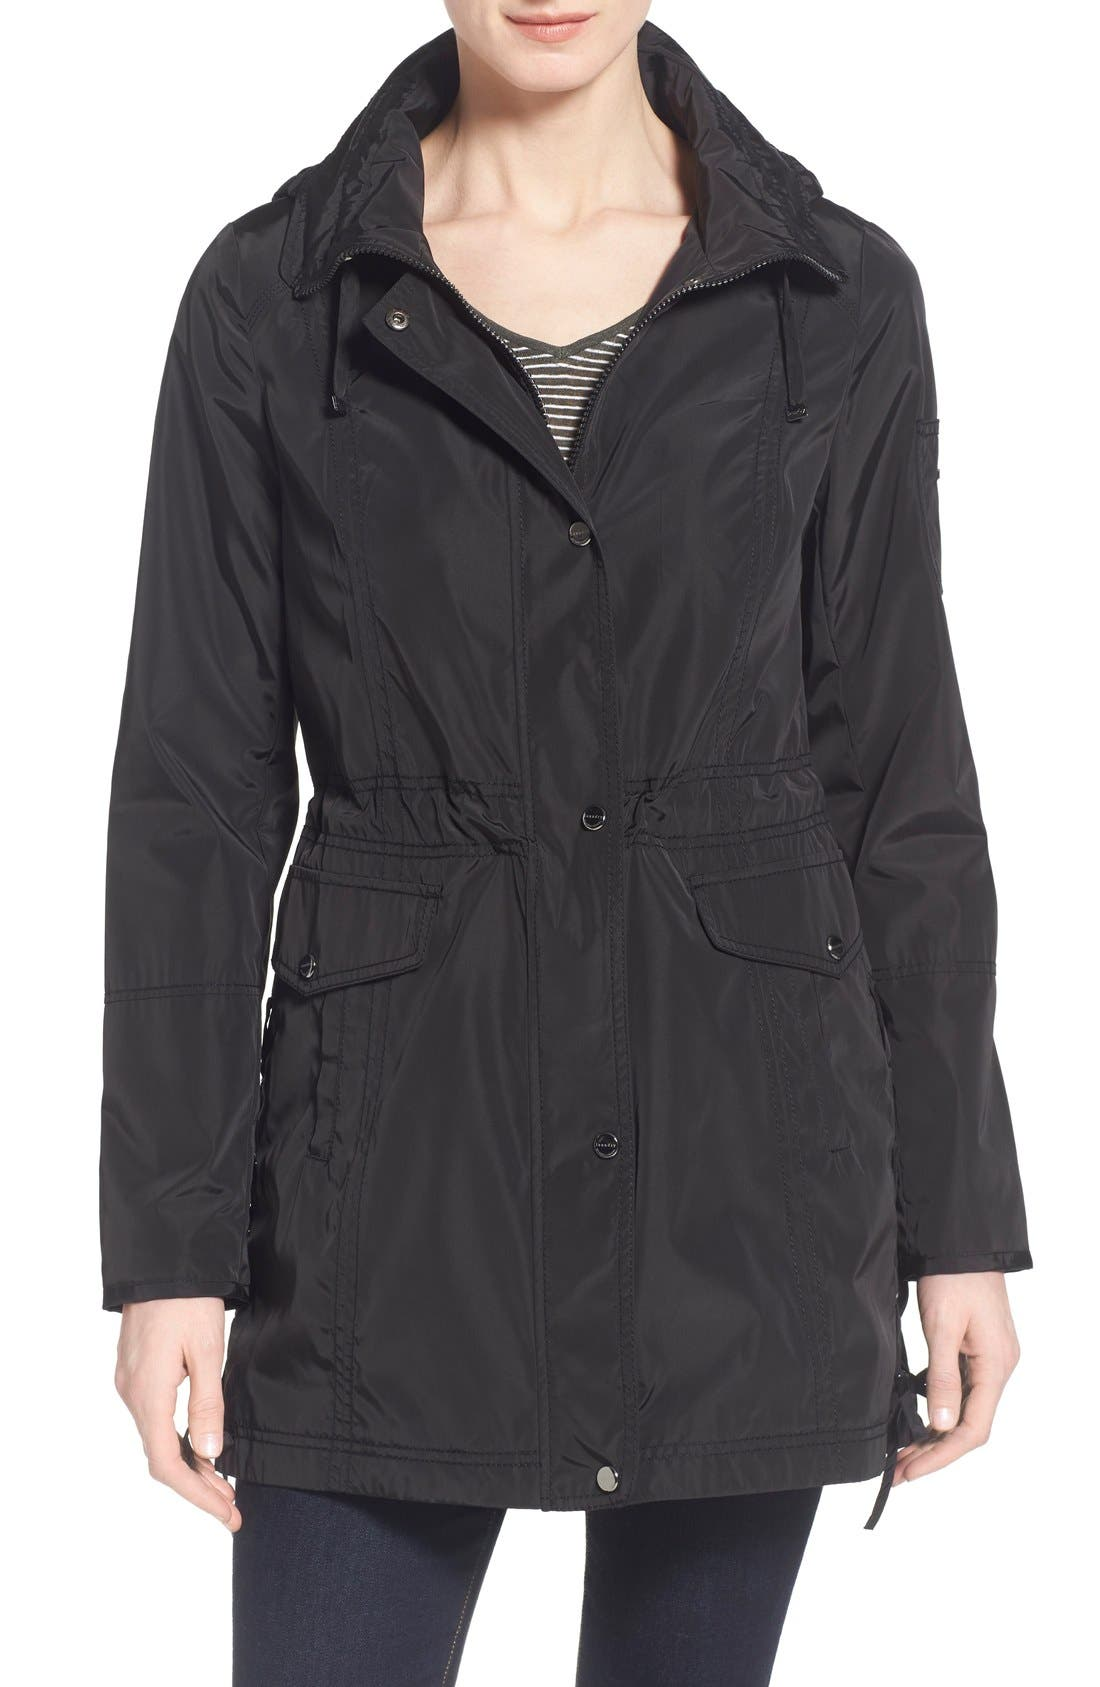 Windbreaker with Lace-Up Sides,                             Main thumbnail 1, color,                             001